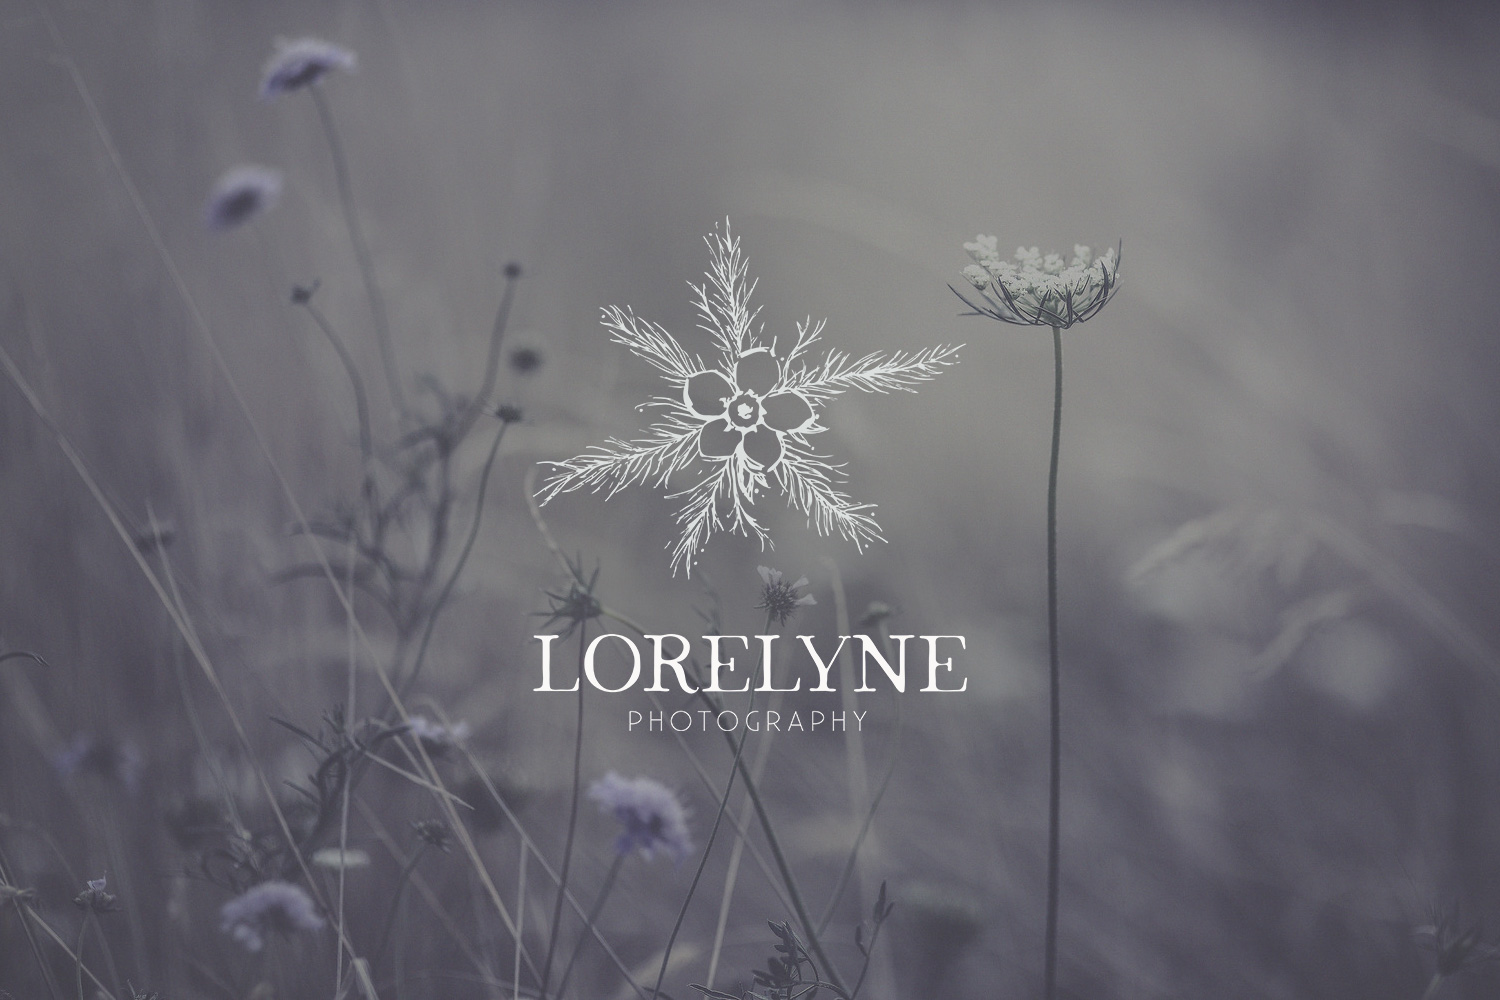 Lorelyne Photography Photographe Photographer branding logo logotype visual identity botanical flower nature plant